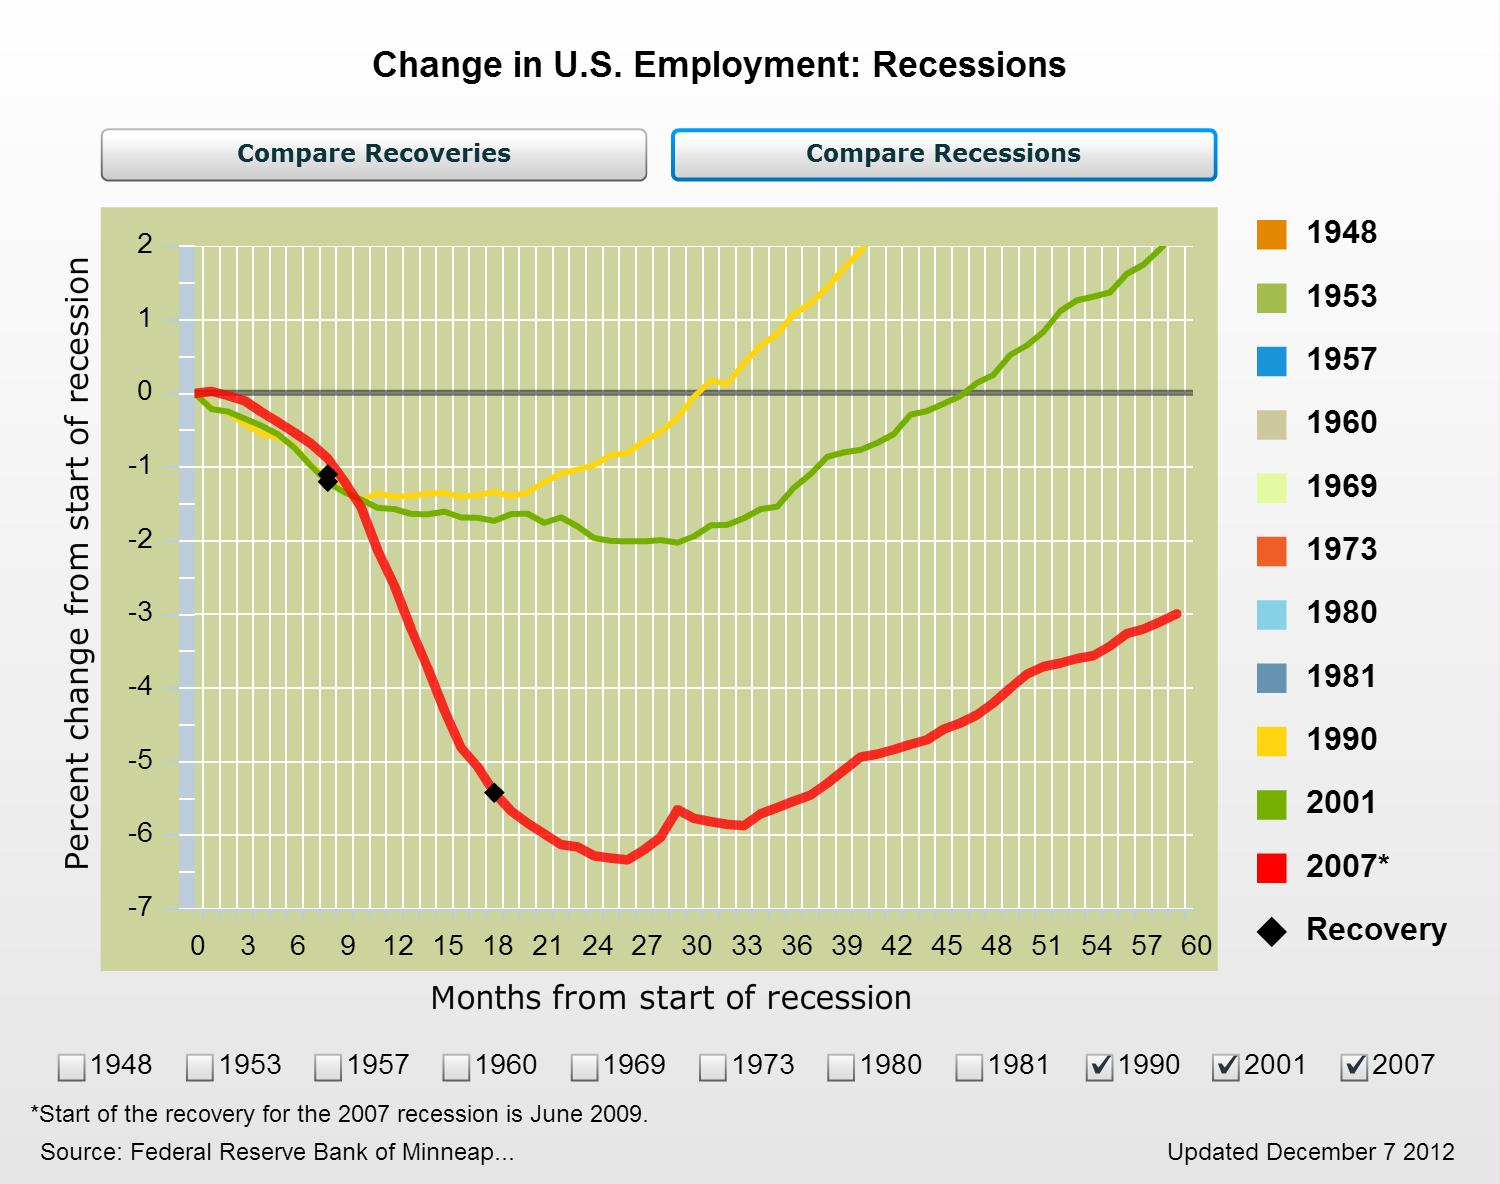 inside the law school scam recession the graph shows that after the 1990 recession payroll employment took 30 months to reach pre recession levels for the 2001 recession job recovery